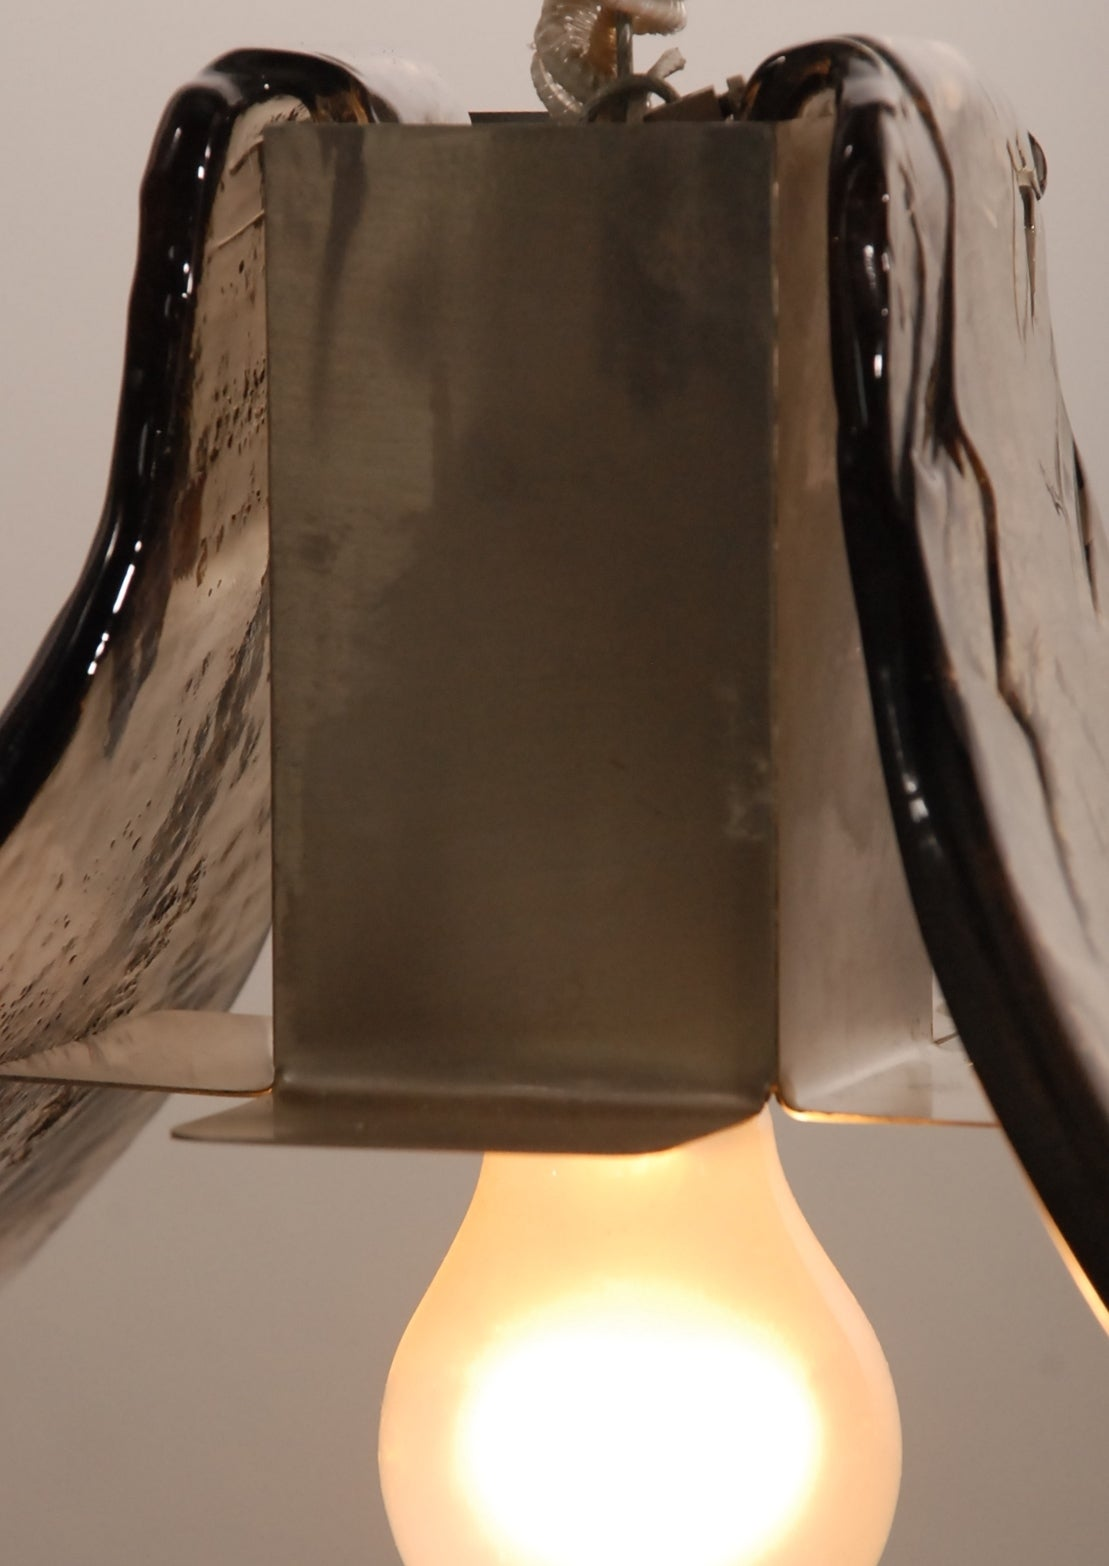 Superb Mazzega Ceiling Lamp From Carlo Nason Incl